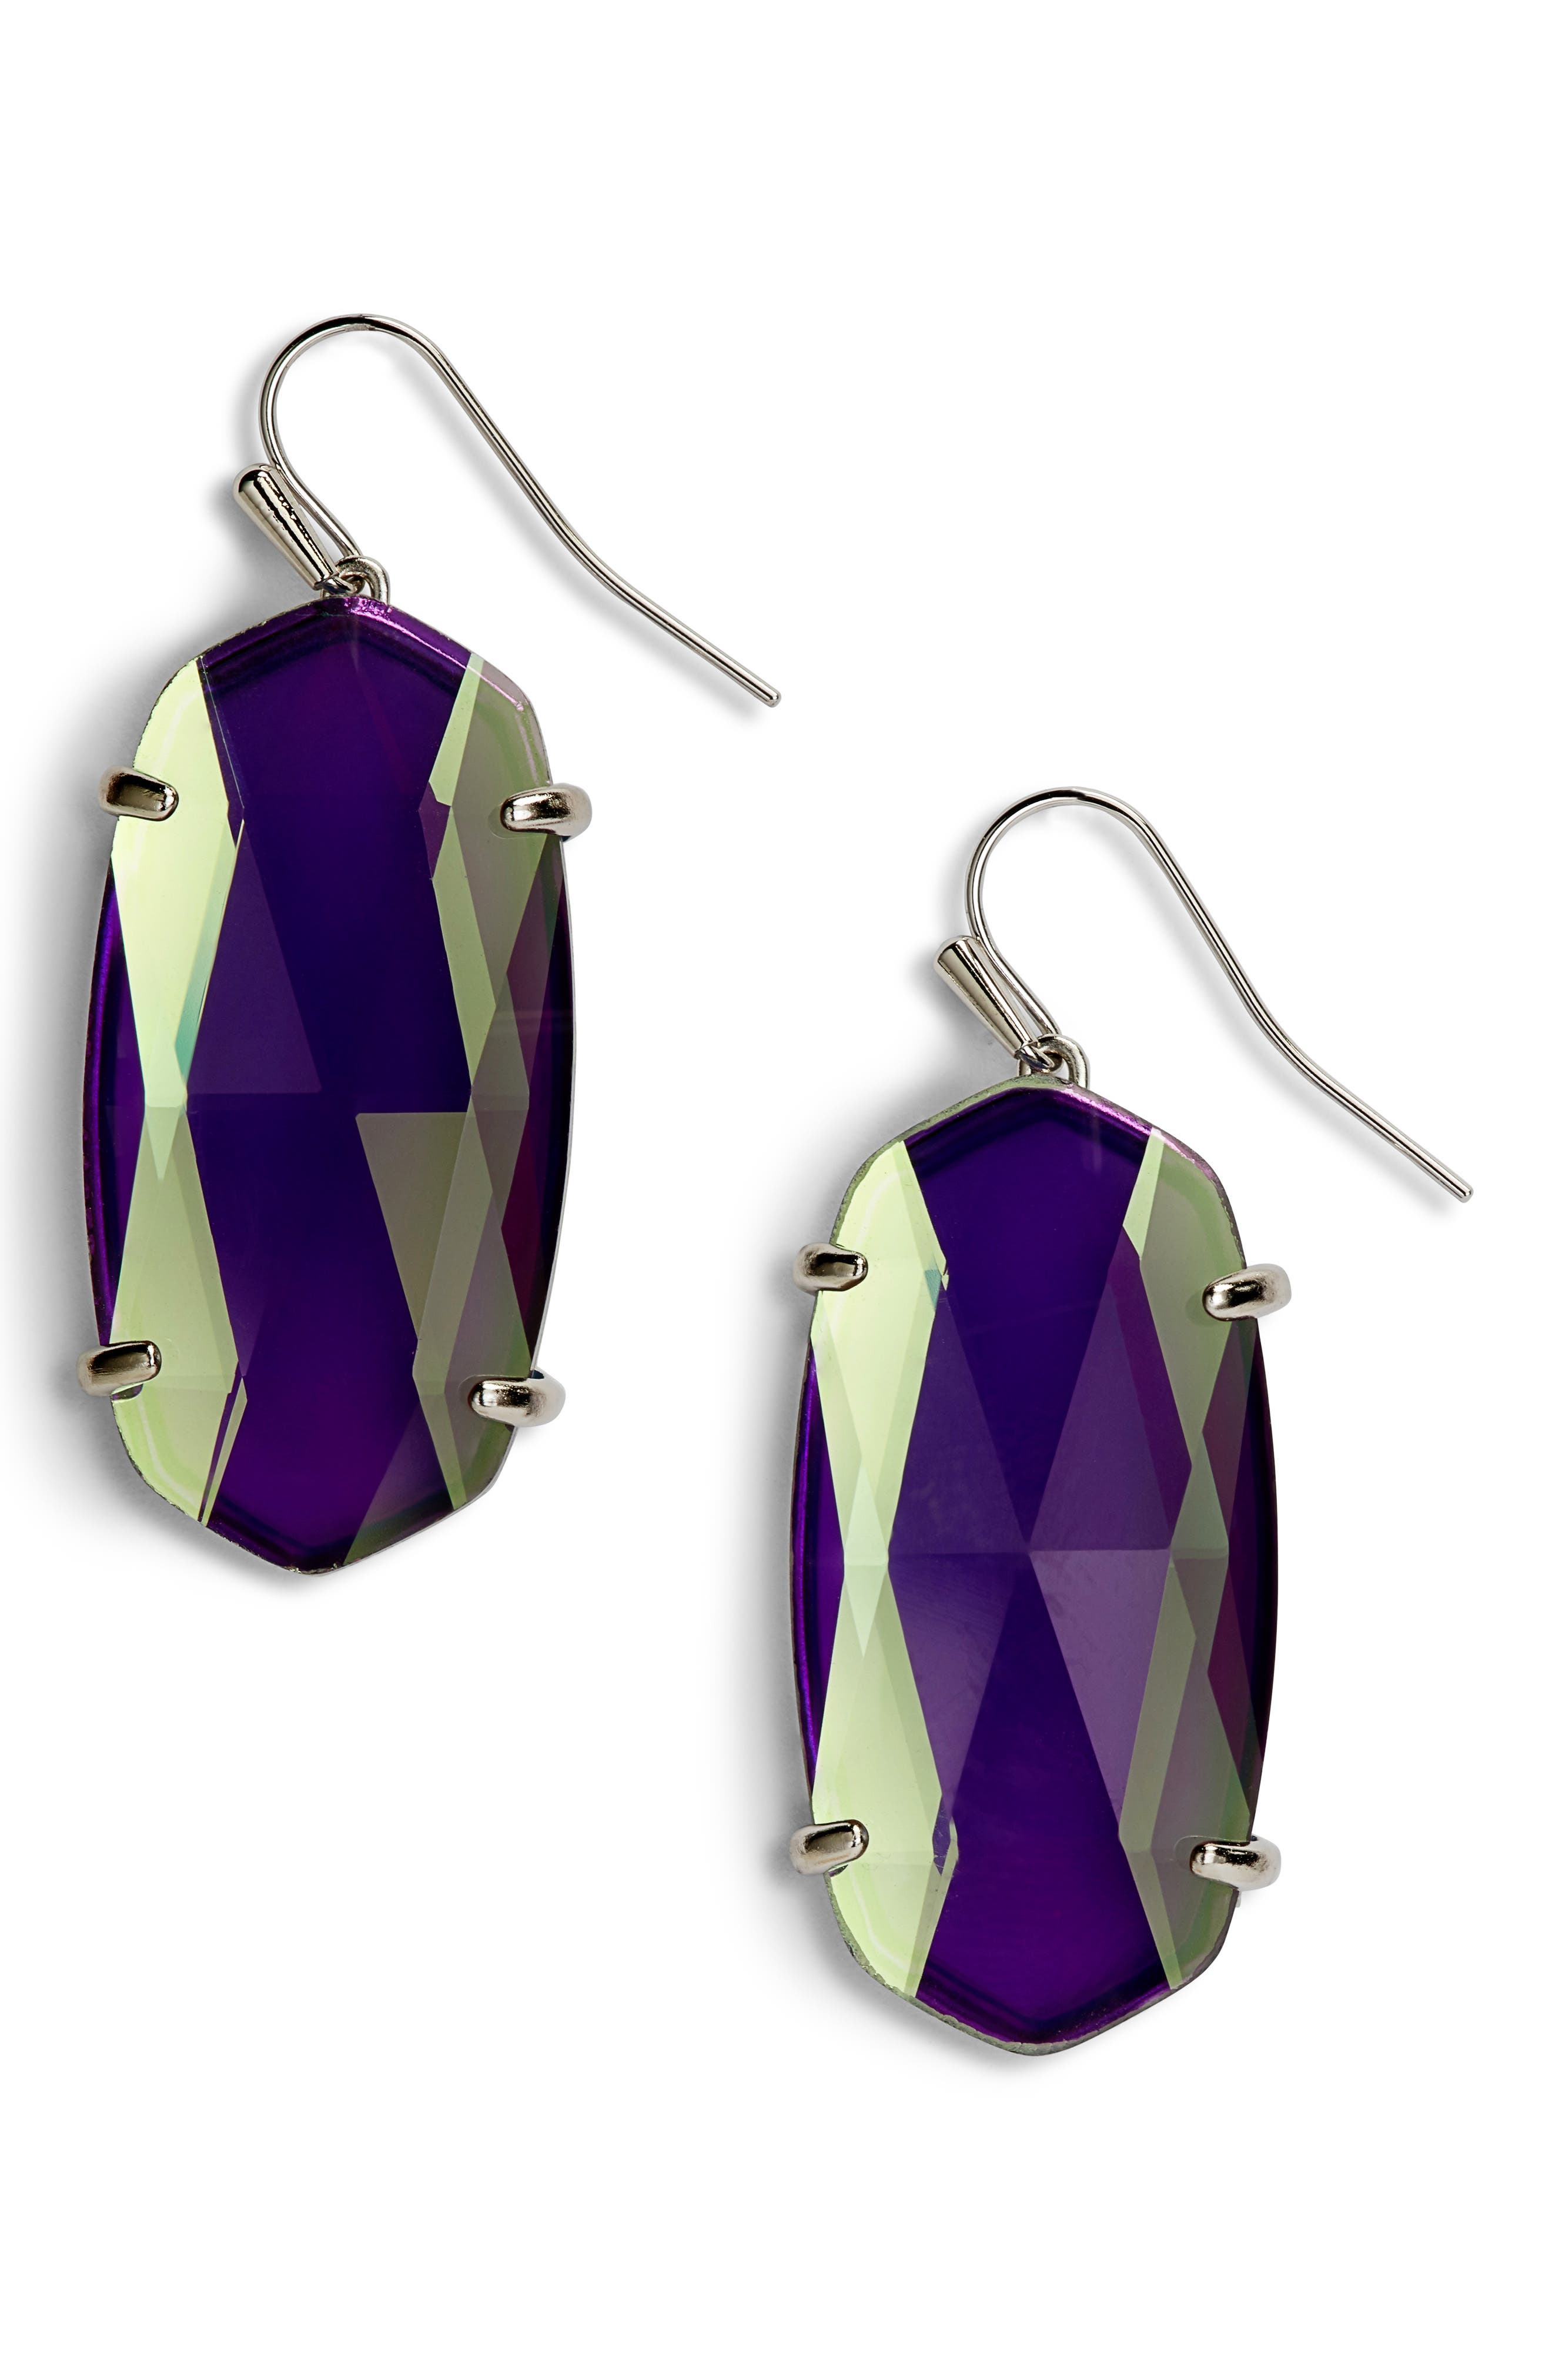 Esme Drop Earrings,                             Main thumbnail 1, color,                             GRAY DICHROIC GLASS/ SILVER